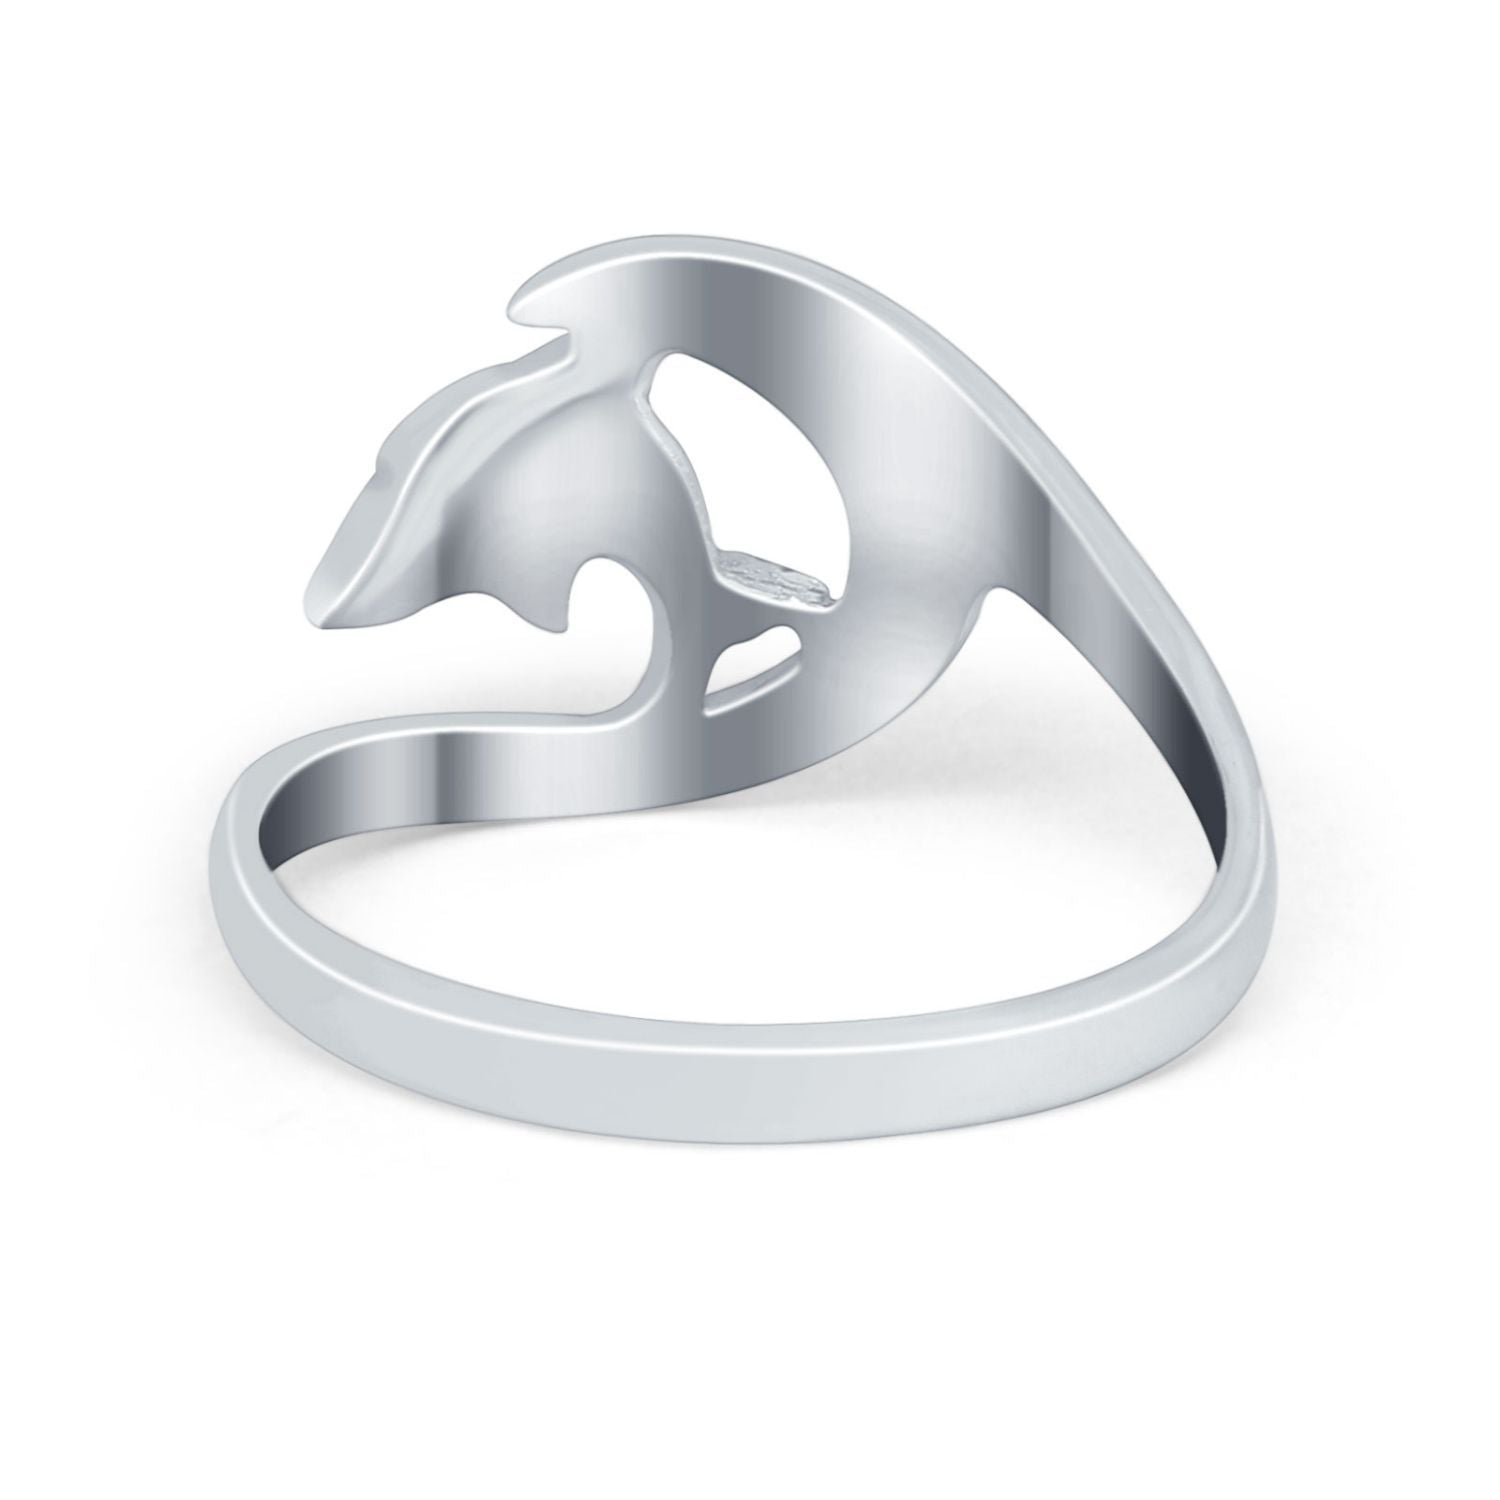 Summer Wave Dolphin Wave Ring Band Simulated Cubic Zirconia 925 Sterling Silver